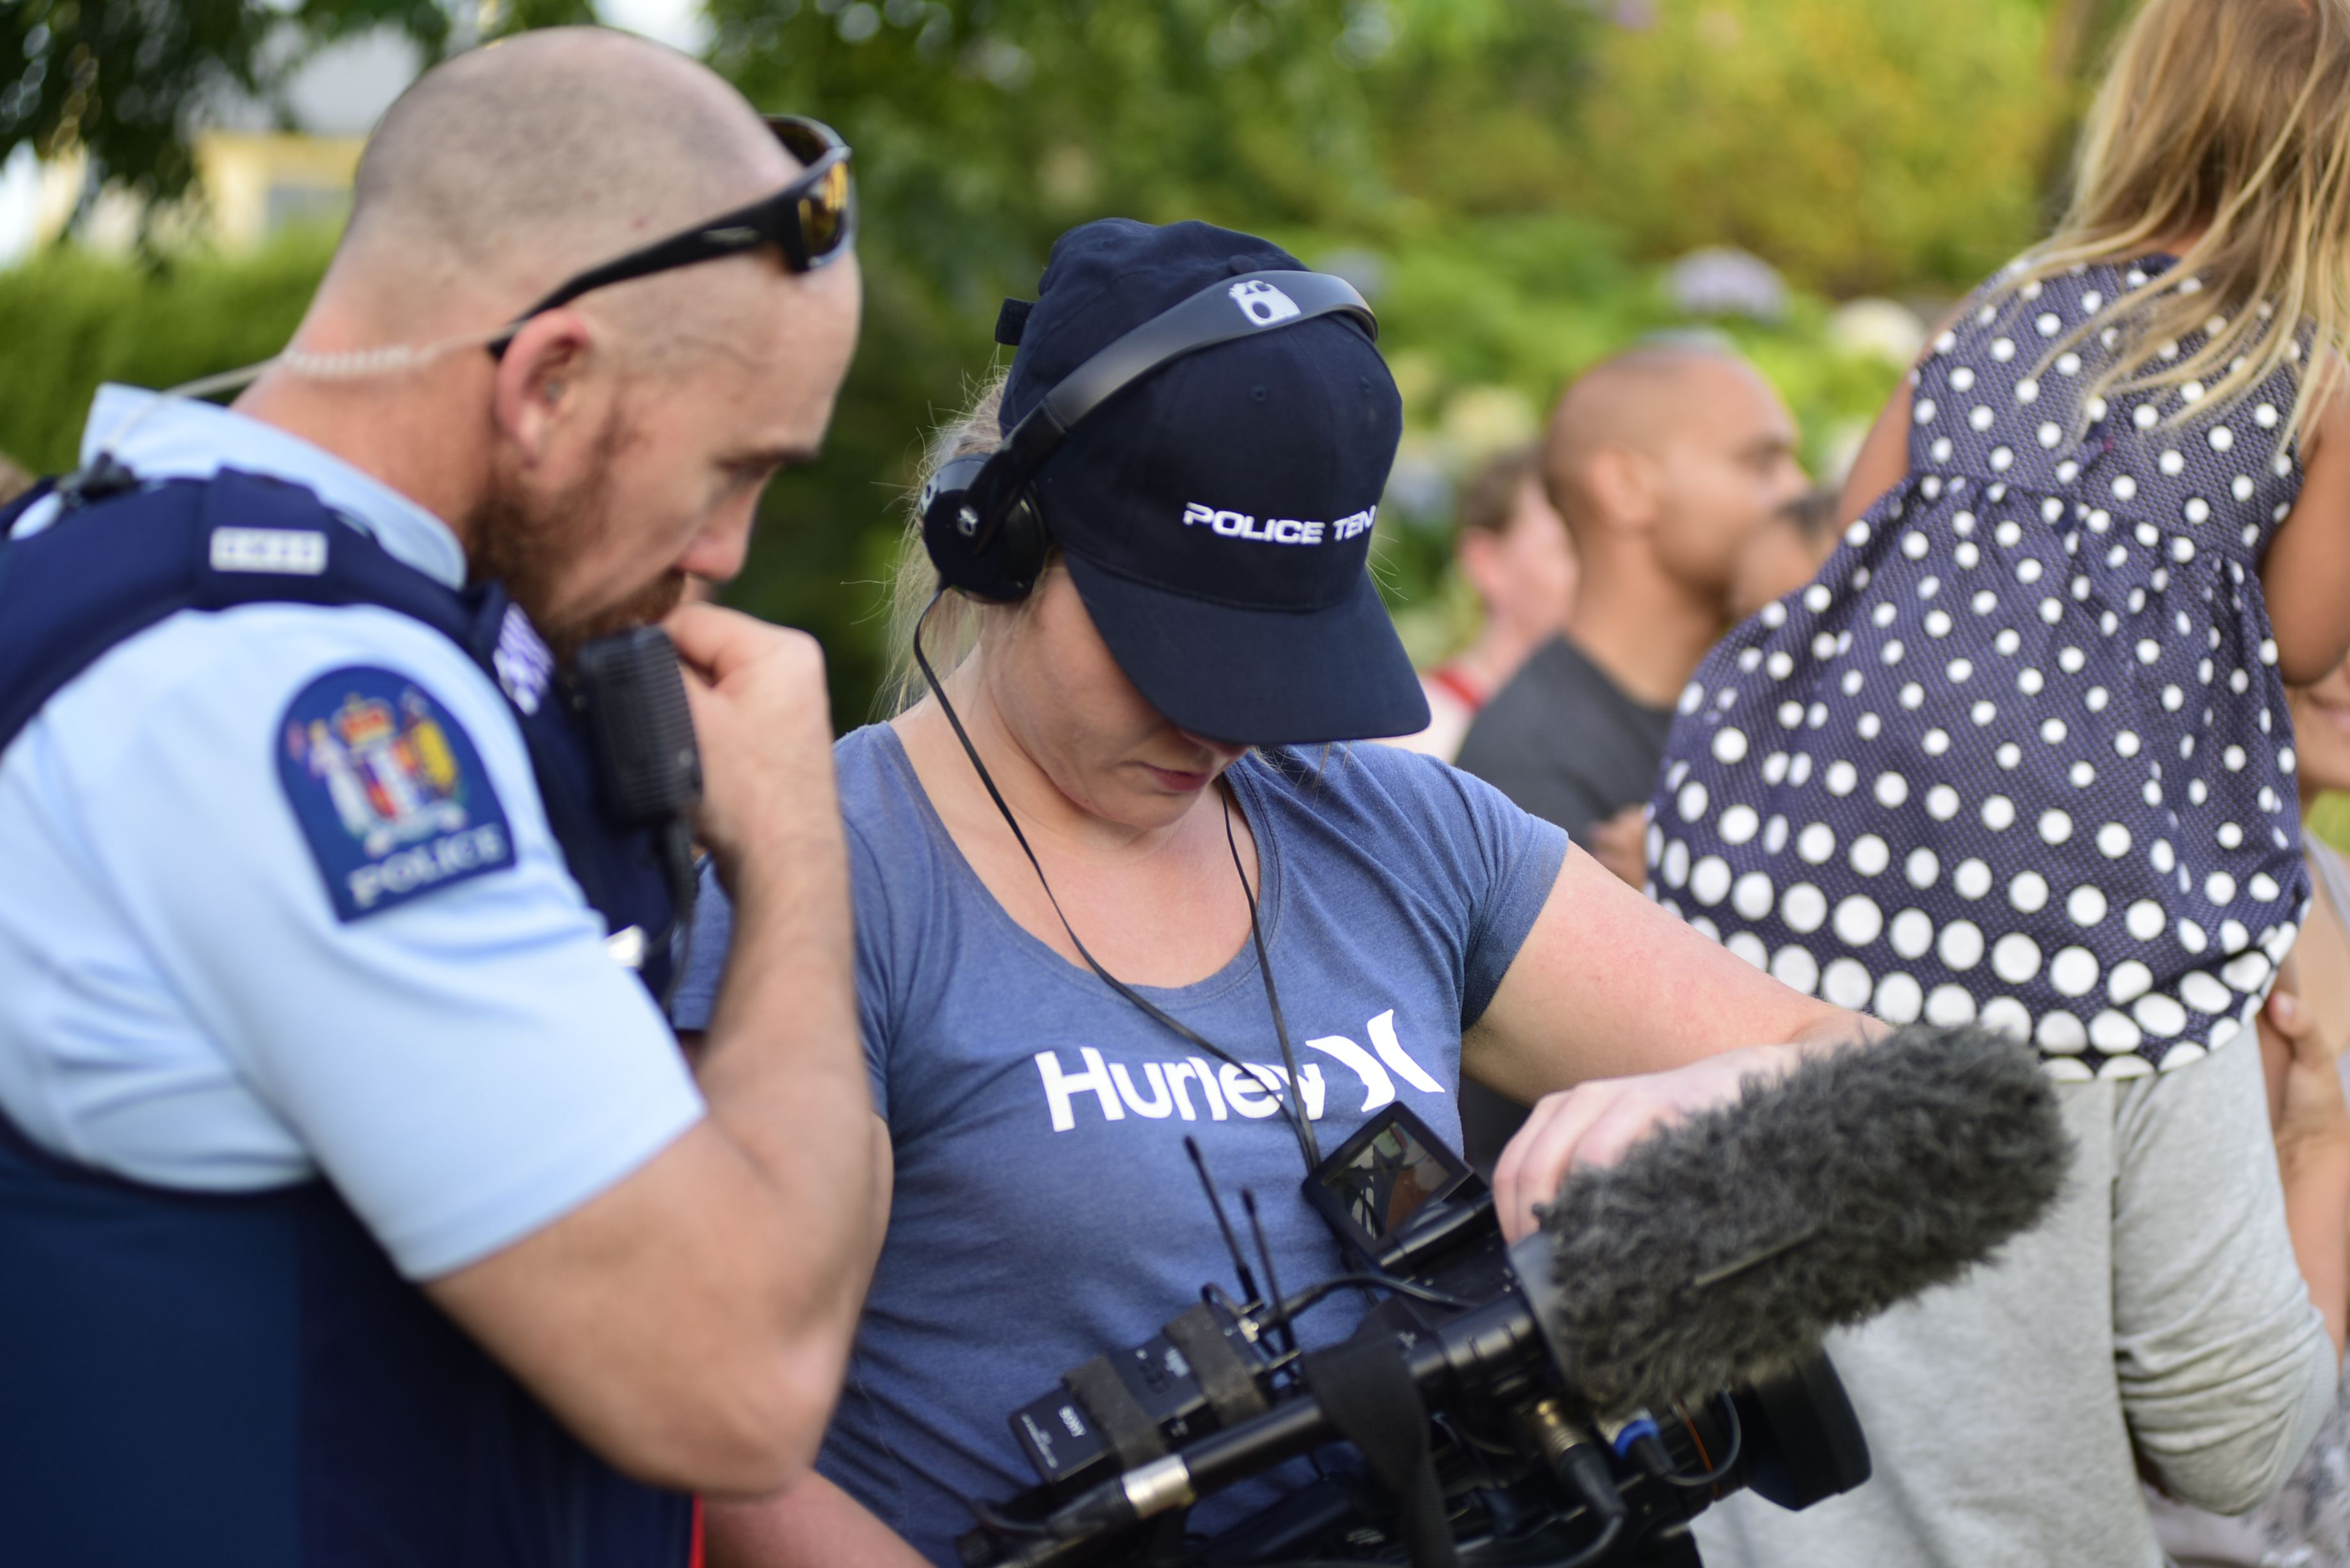 Nz Police Are Failing The Public Nz Herald